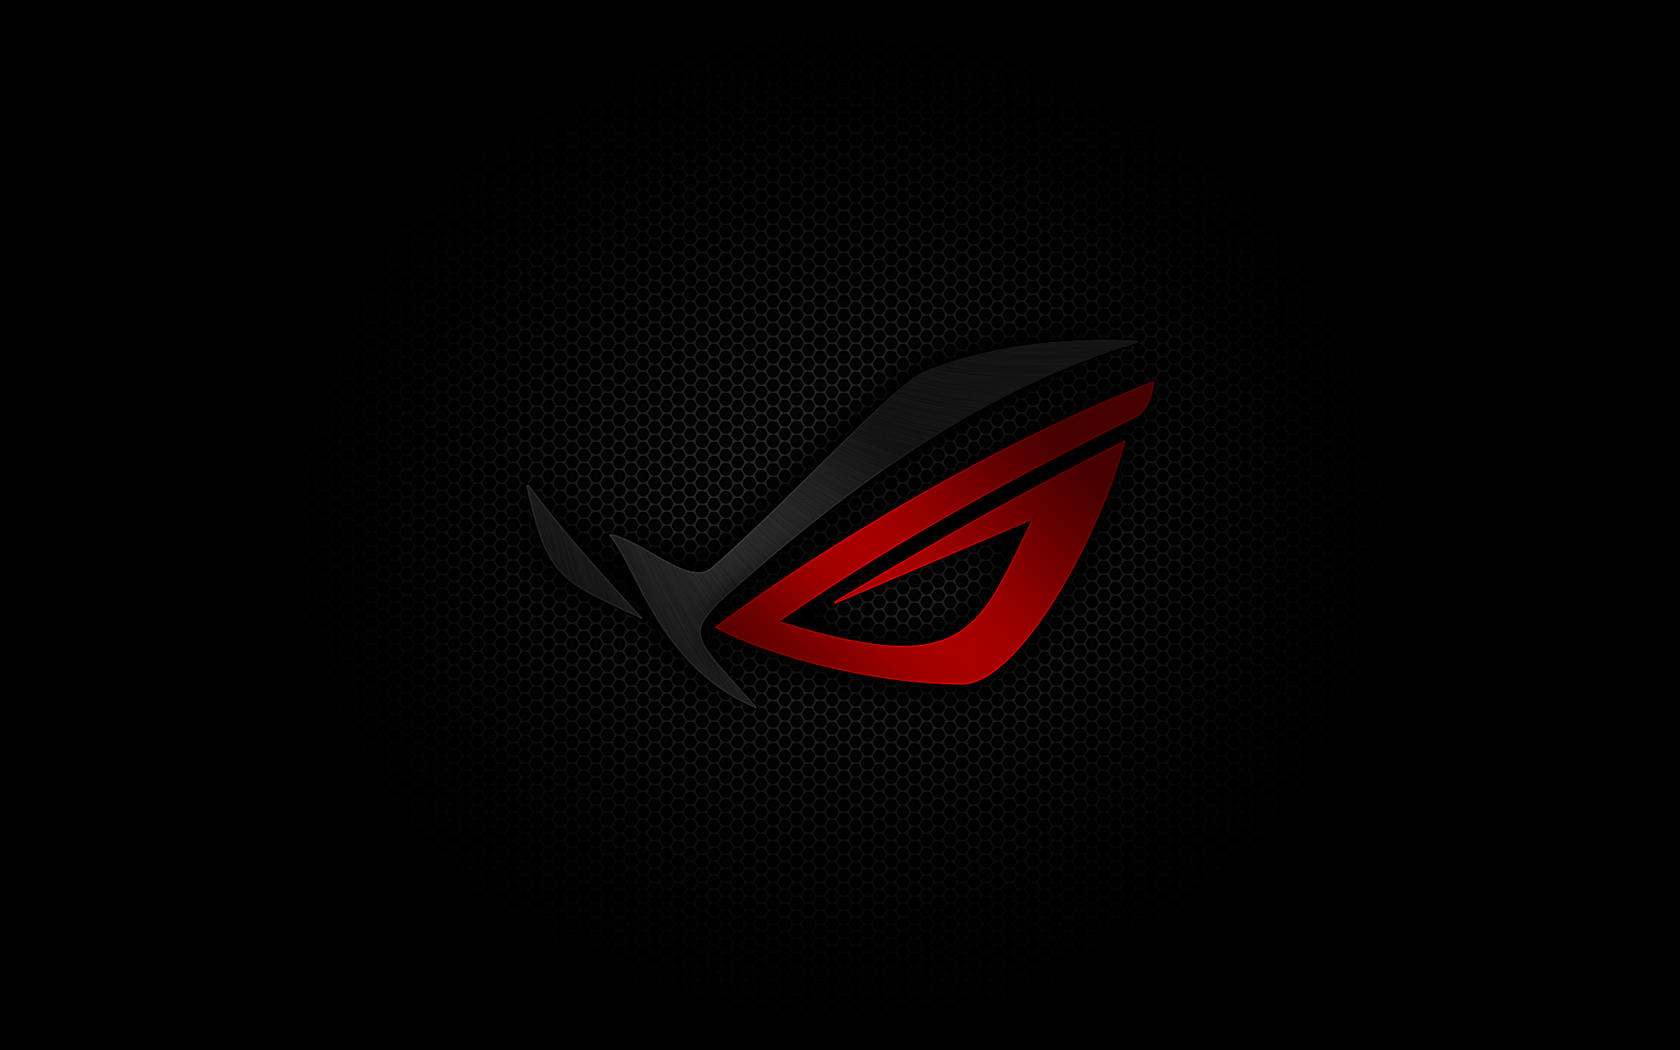 Red Asus Wallpaper: ASUS ROG Wallpaper Pack By BlaCkOuT1911 On DeviantArt